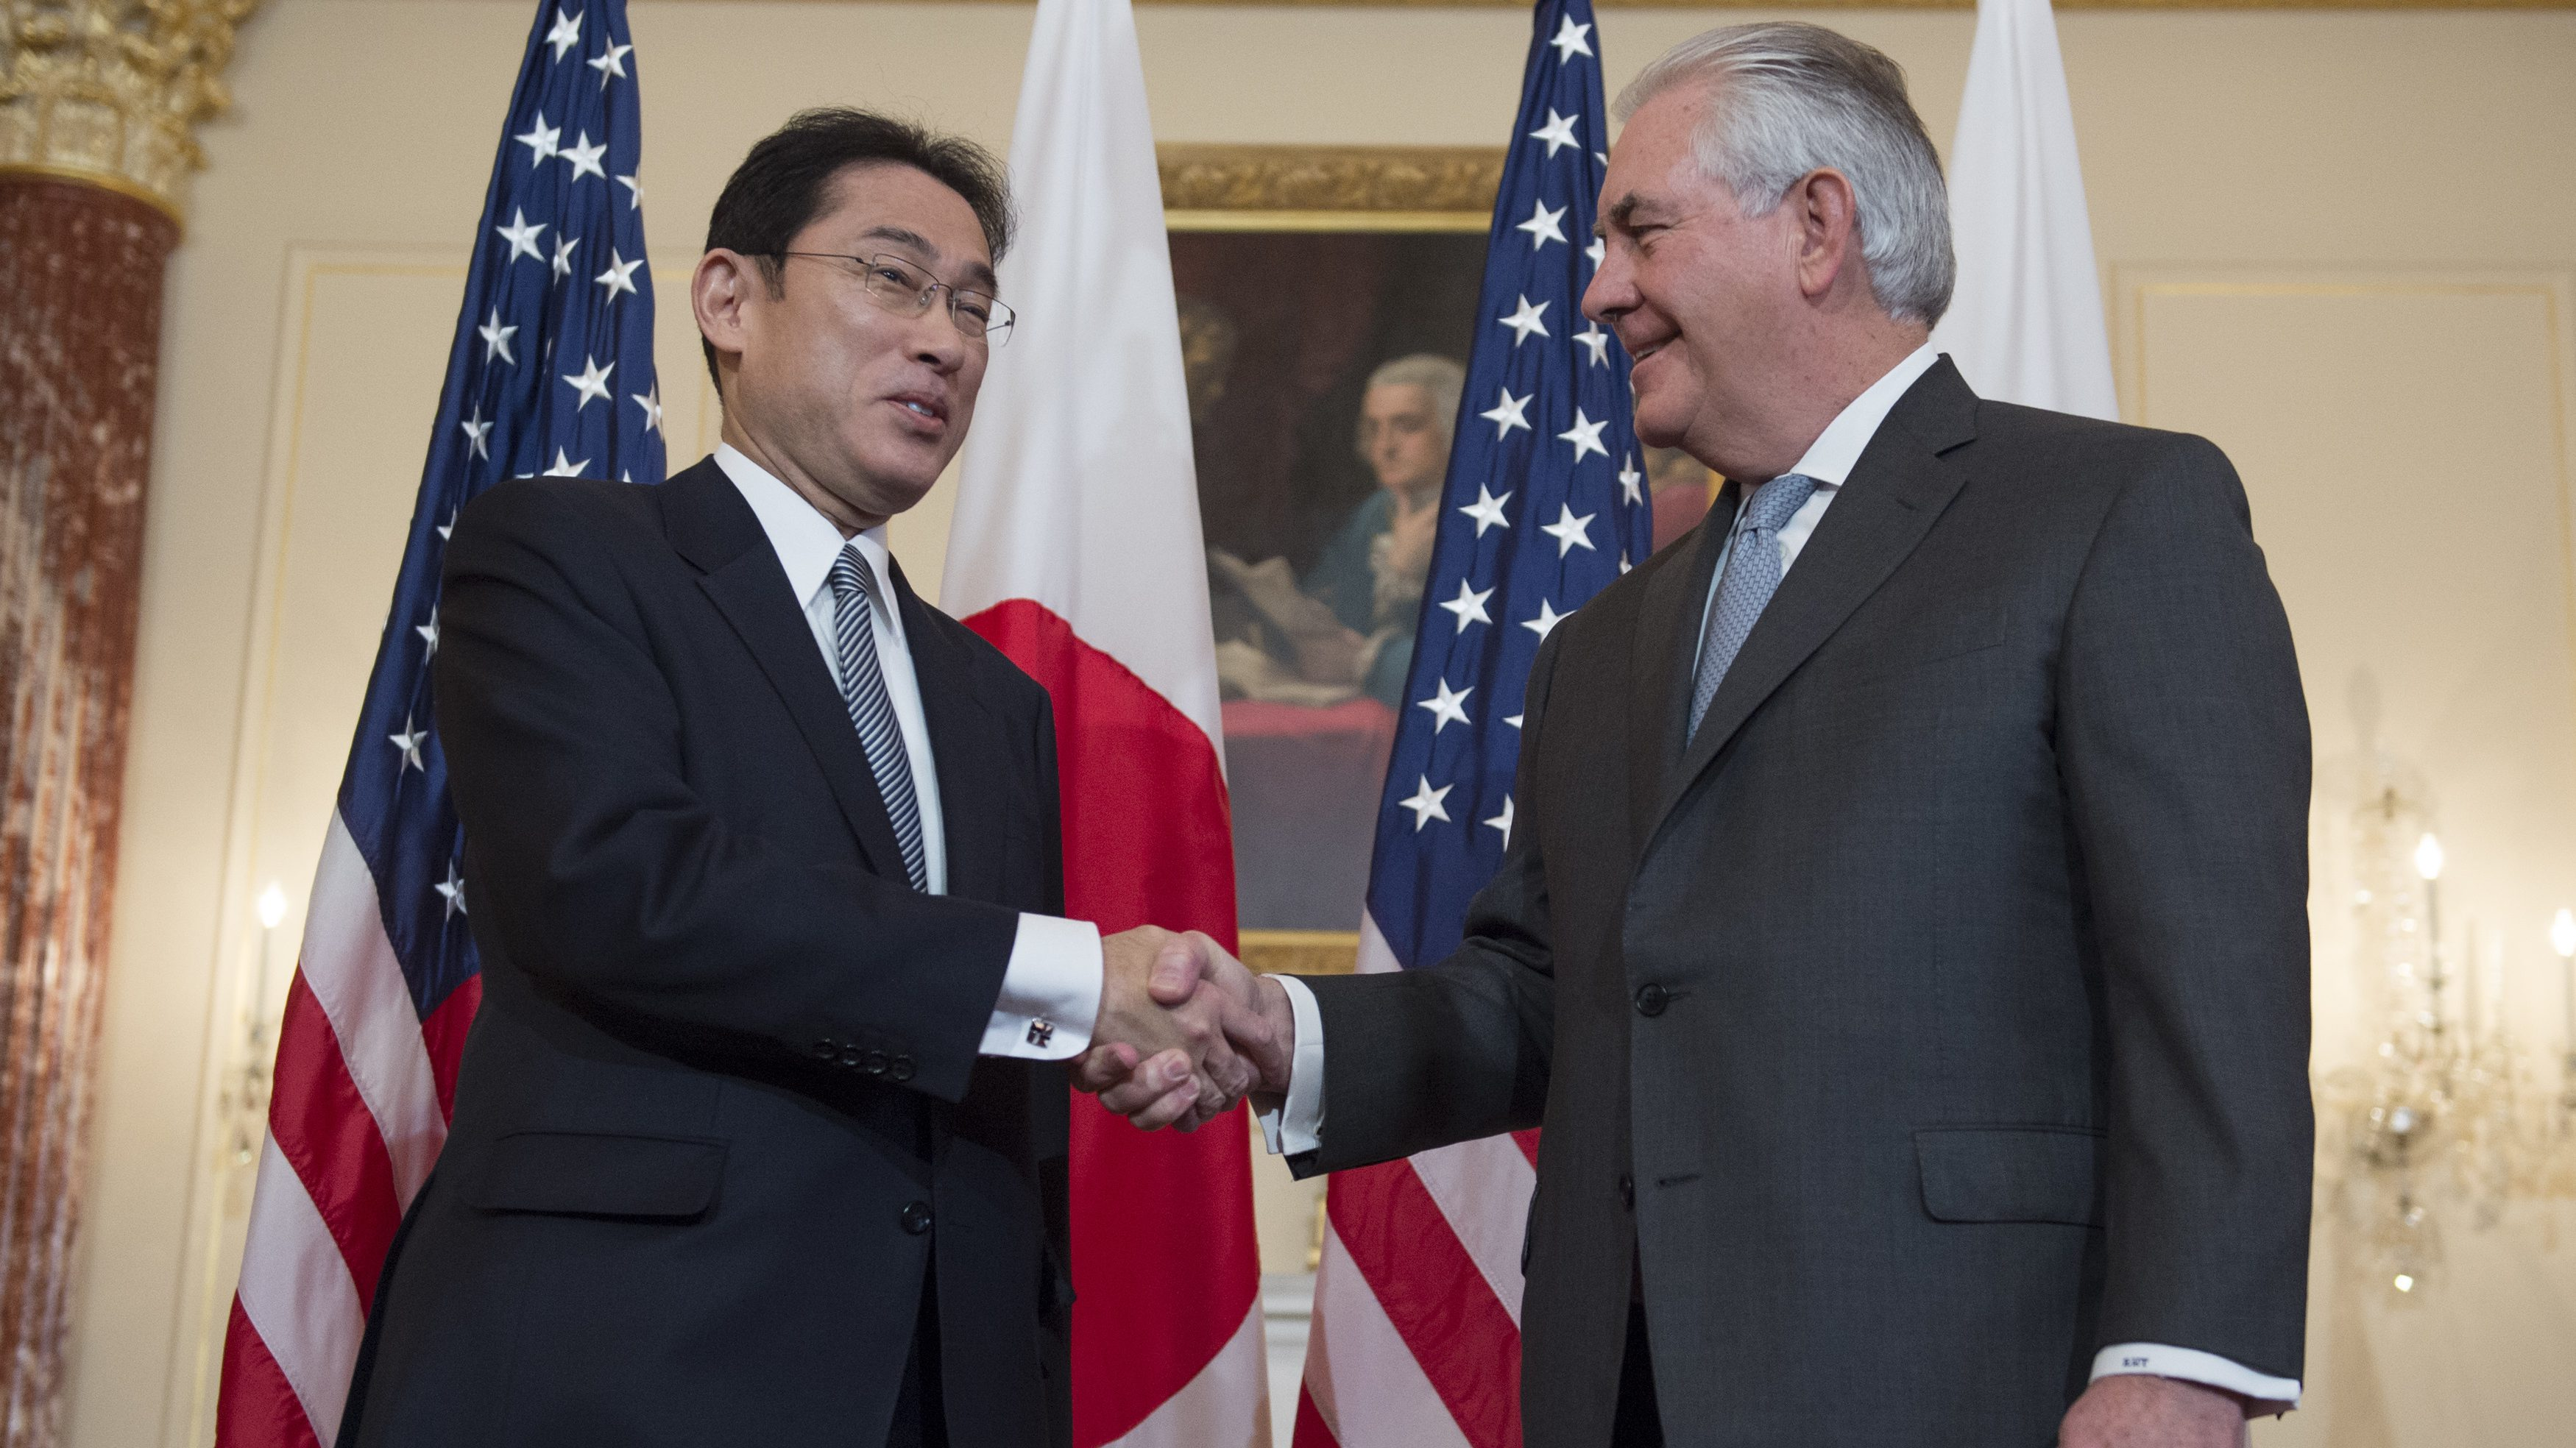 Tillerson shakes hands with Japans foreign minister Fumio Kishida in Washington.